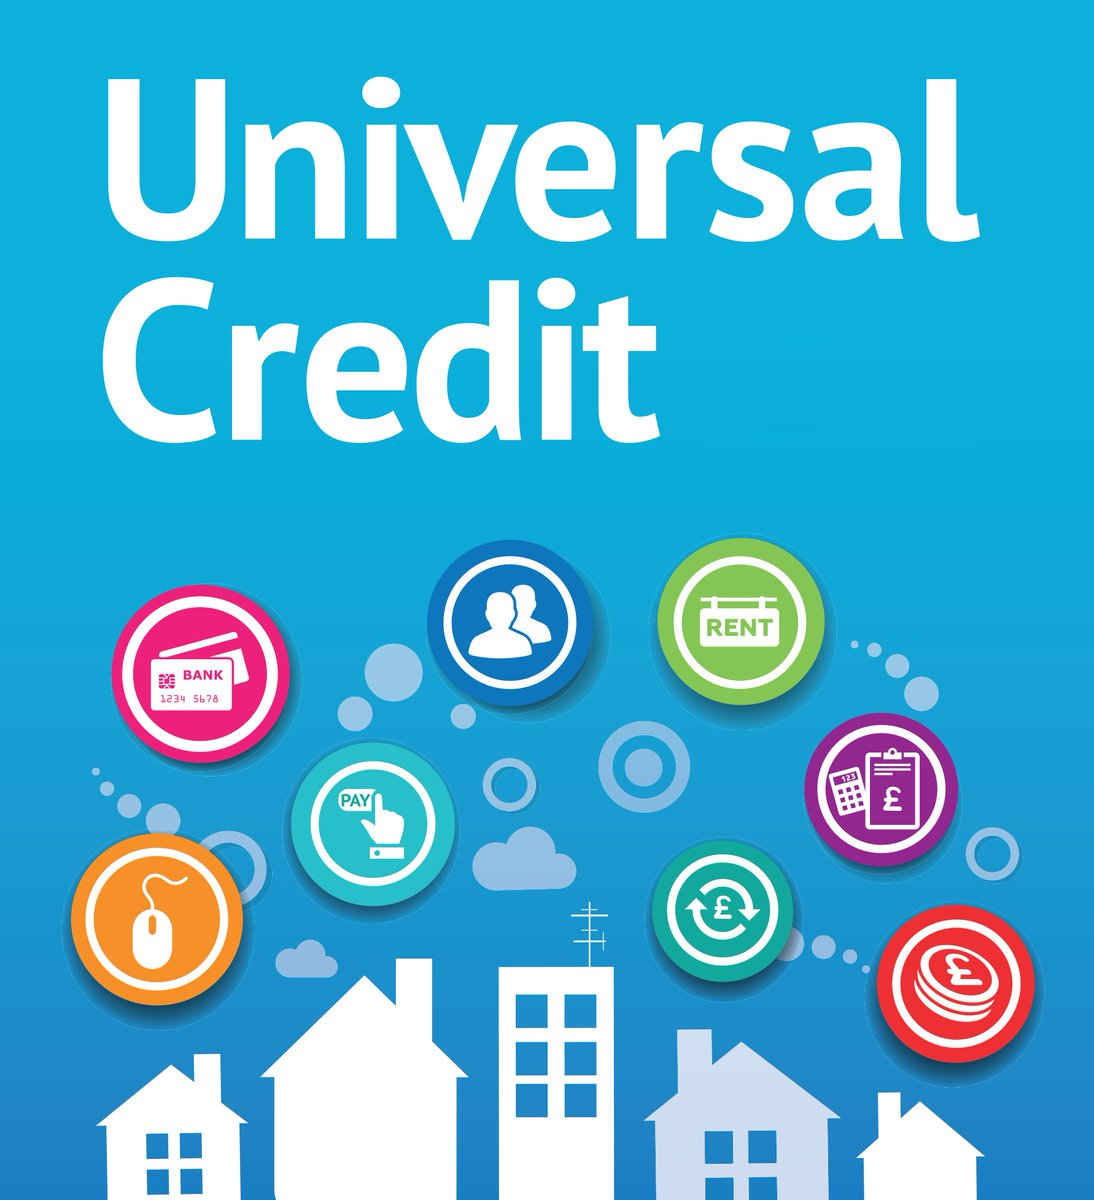 If you claim Universal Credit, remember to check the 'to do' list in your journal, and update your housing costs to ensure that you are paid the correct amount. #CCDCUniversalCredit https://t.co/iVrNqyMa2a